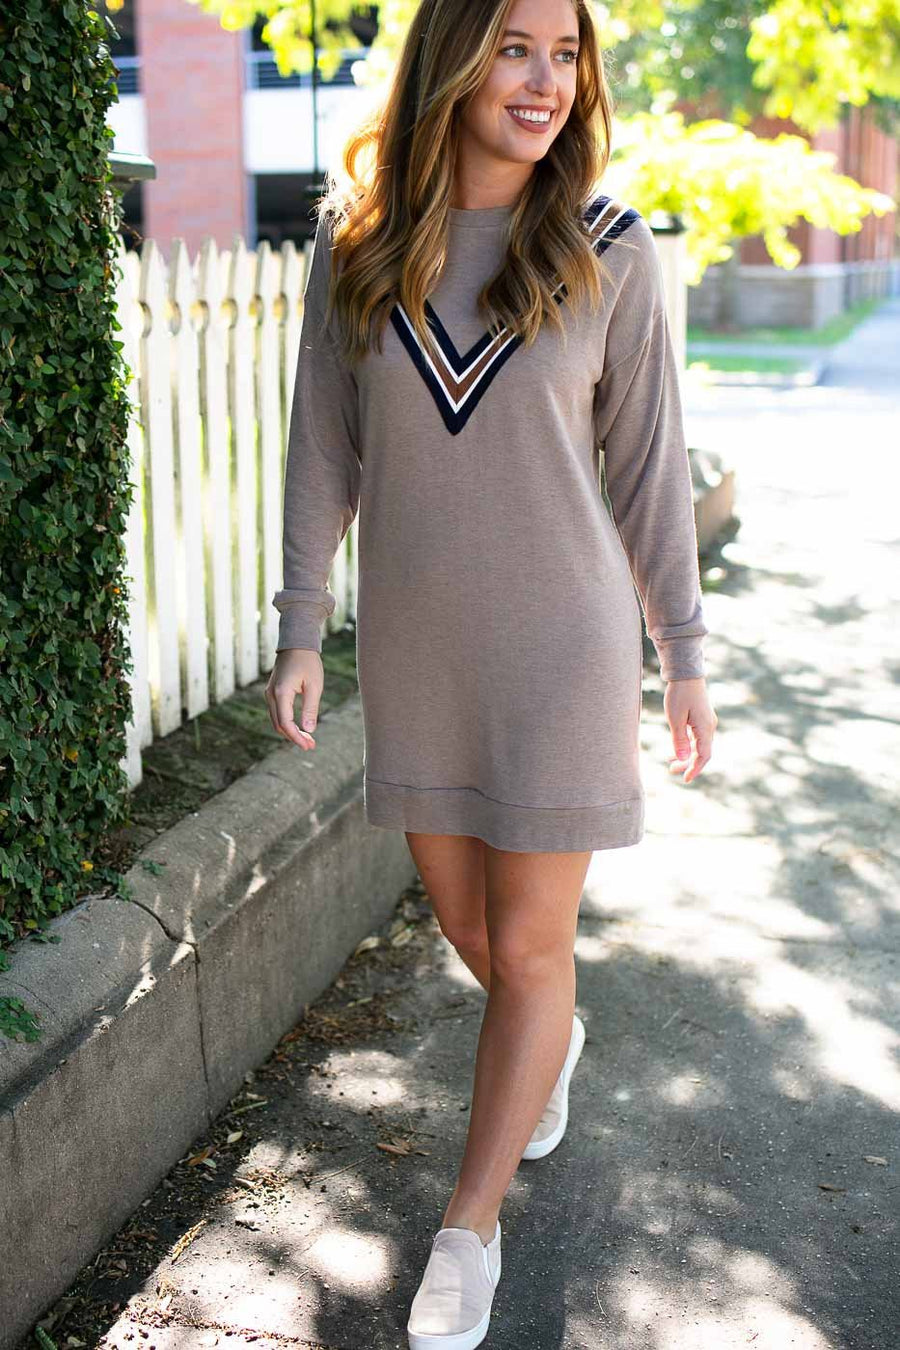 Dresses Just My Style Ribbon Applique Sweatshirt Dress - Lotus Boutique